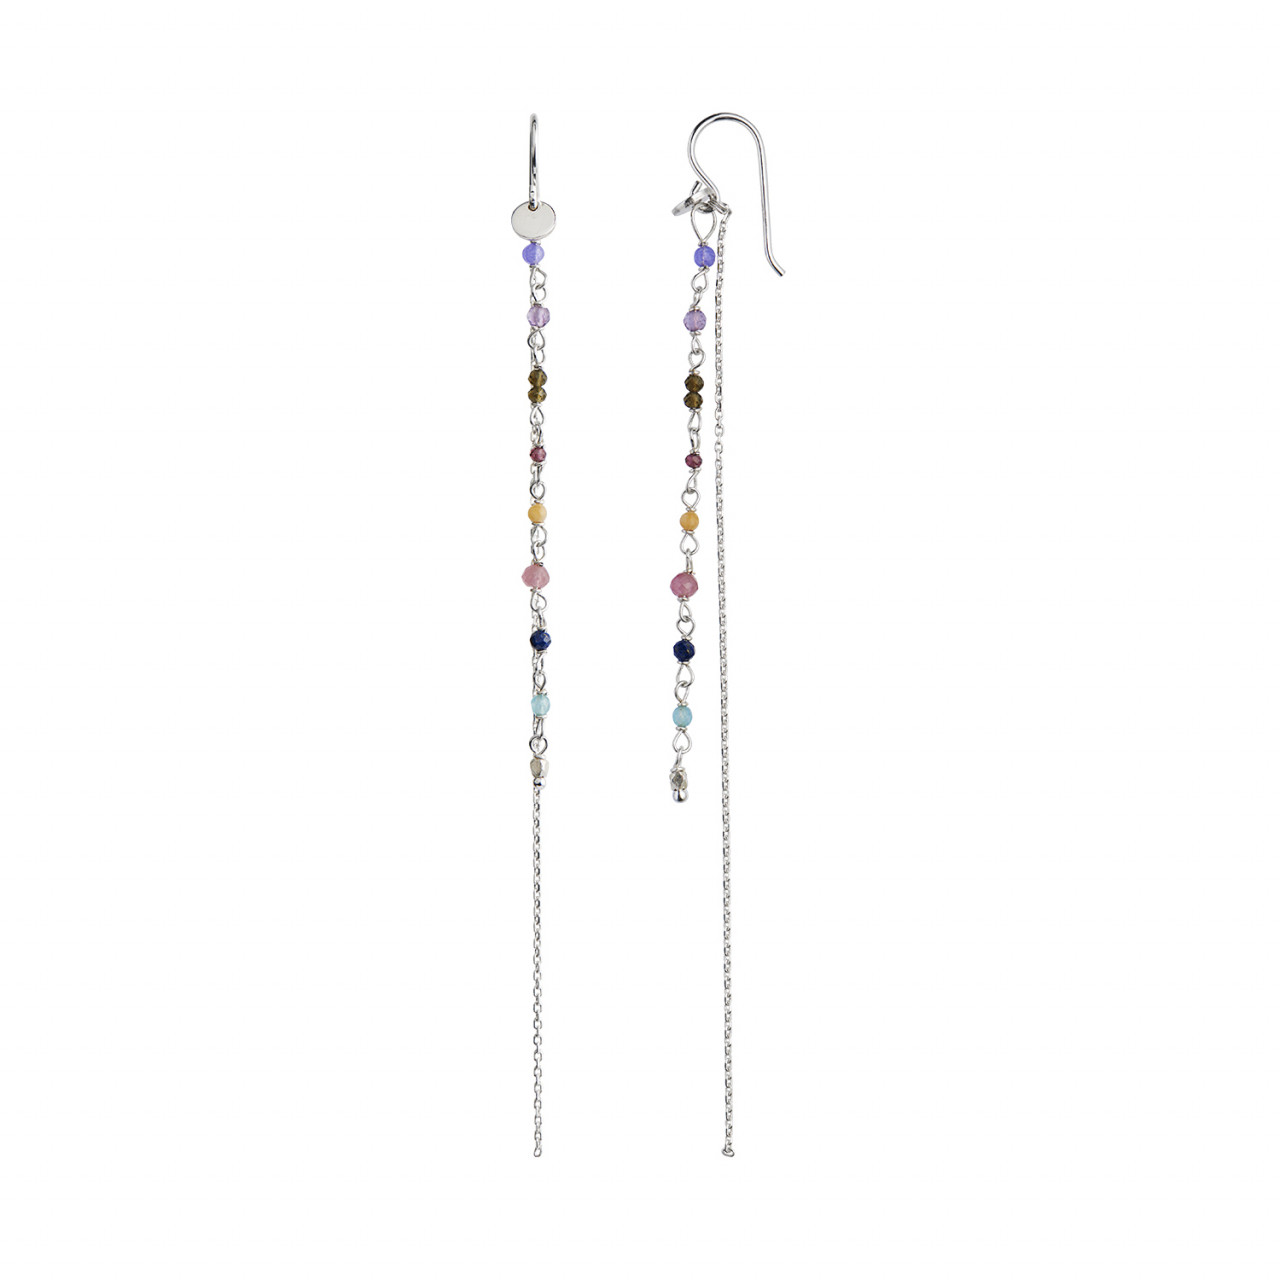 Petit Gemstones with Long Chain Earring Silver - Berry Mix